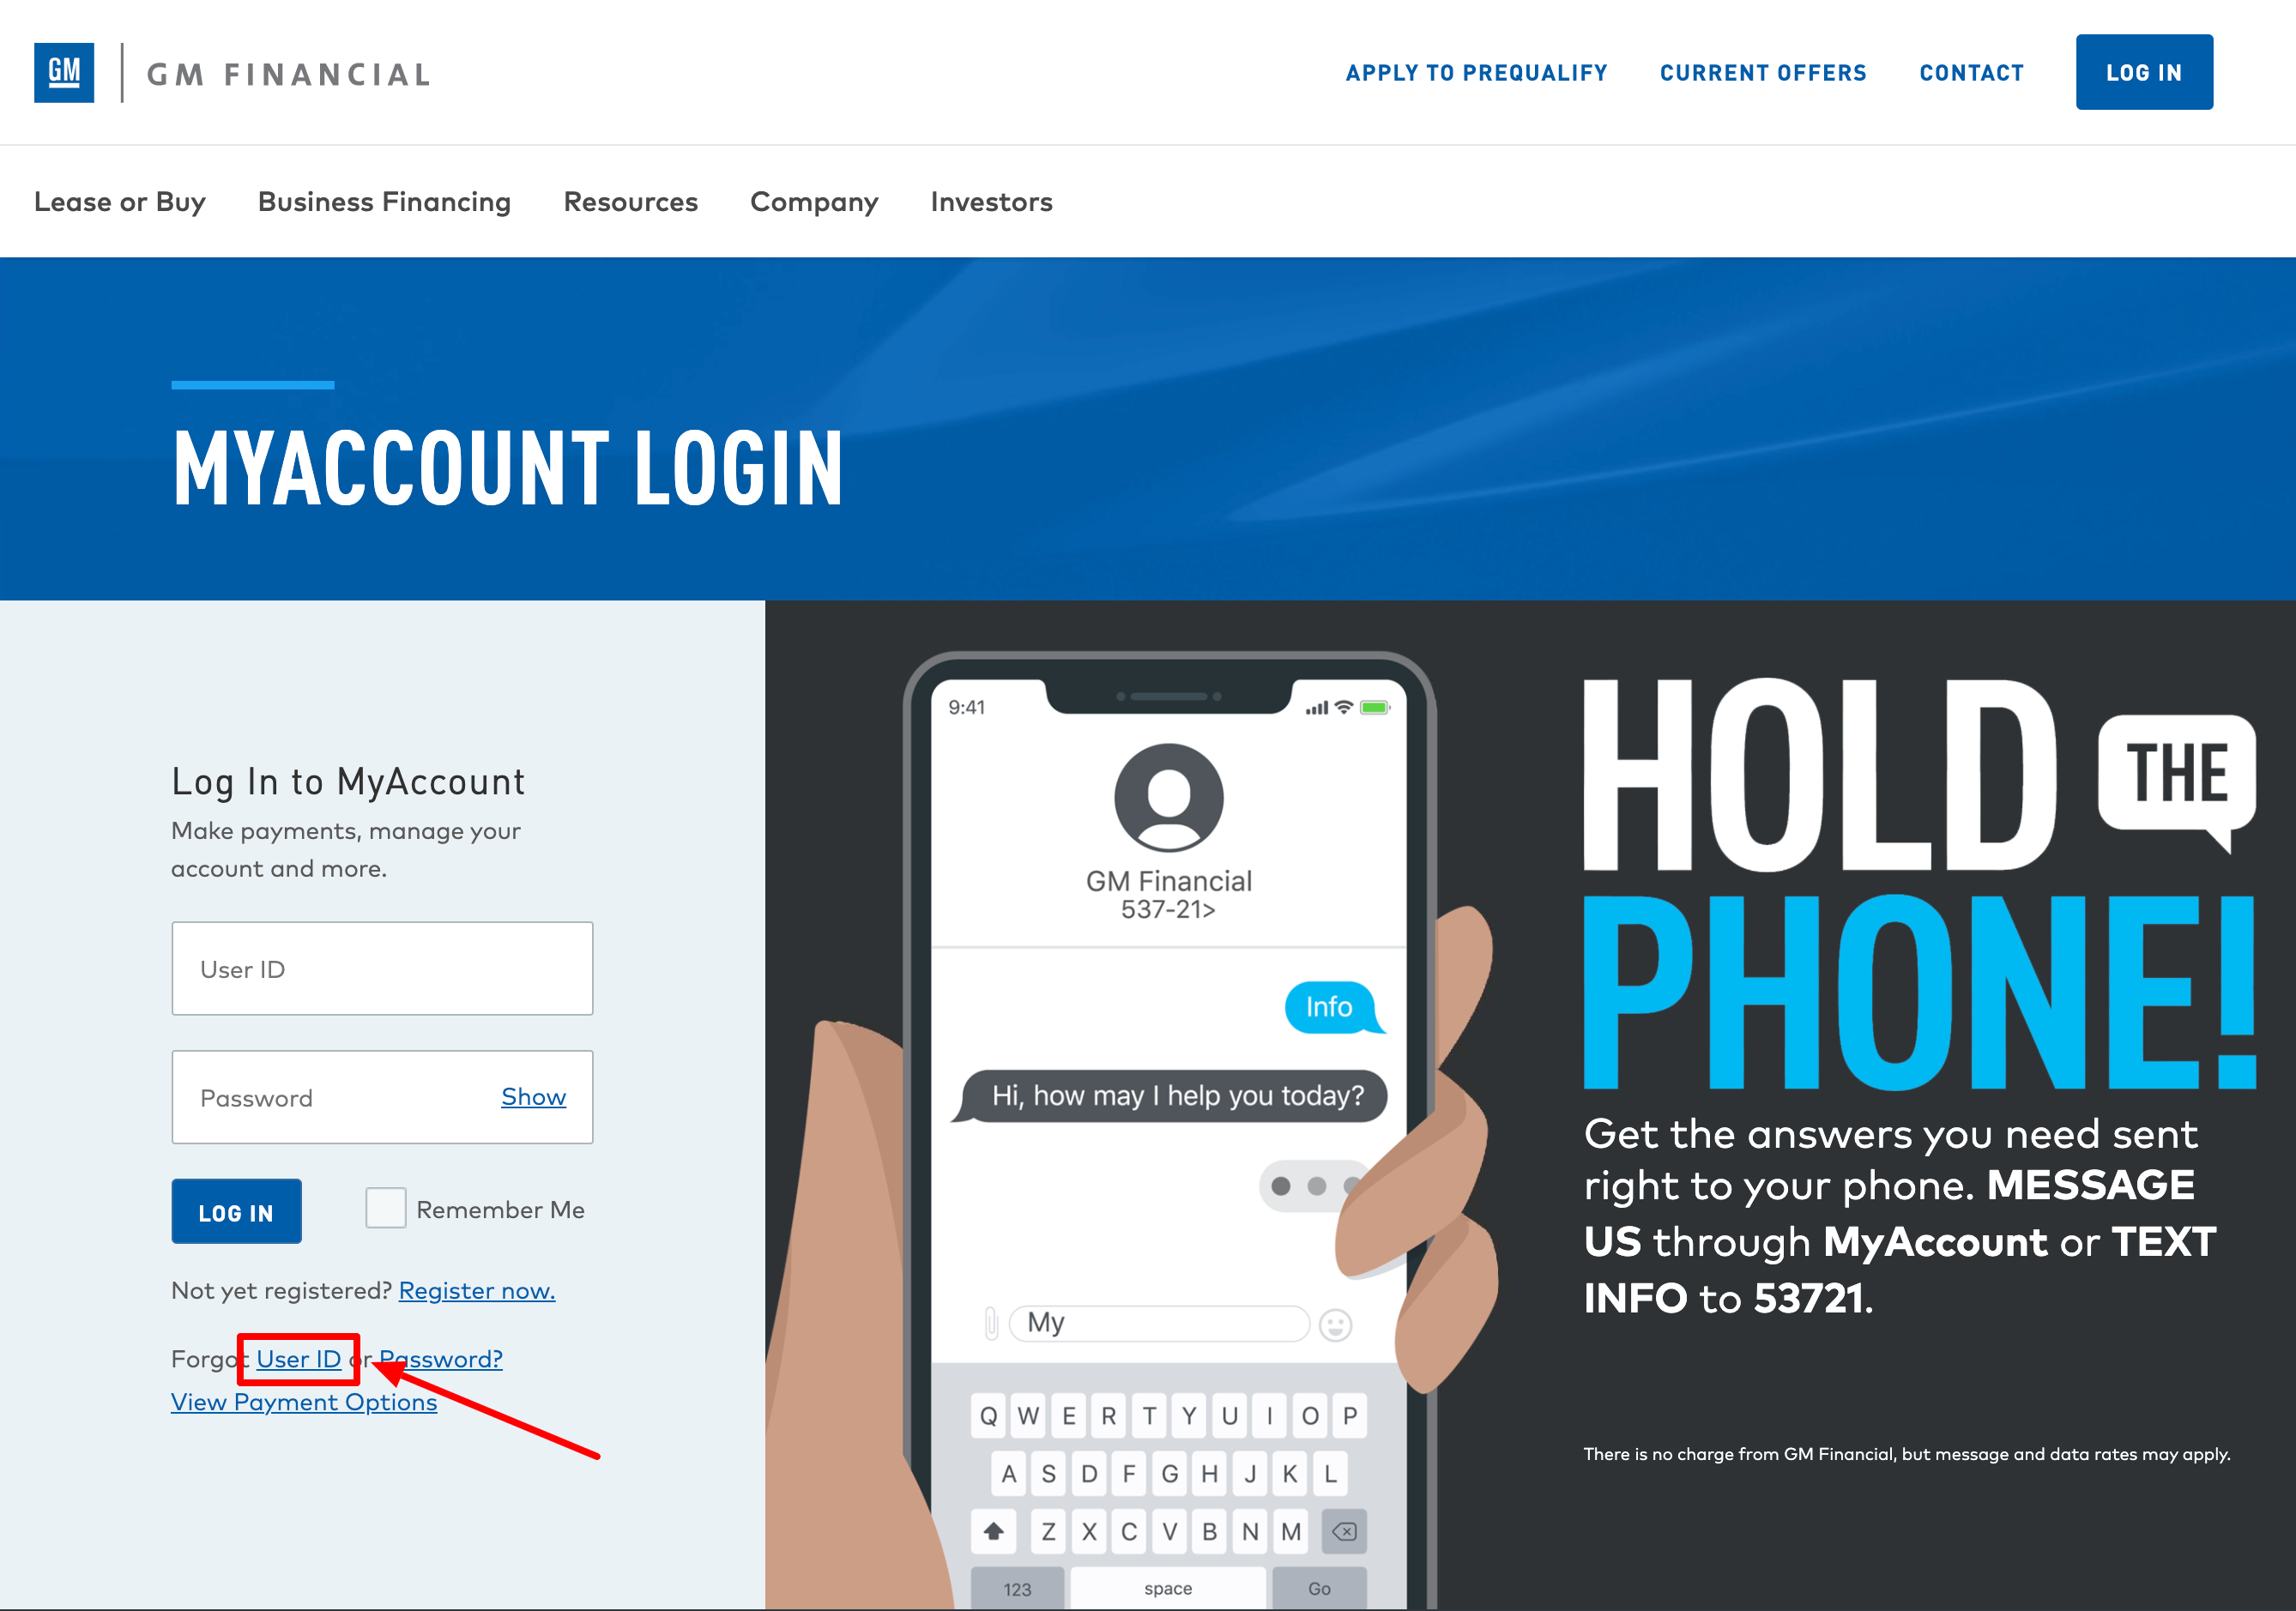 GM Financial myaccount login